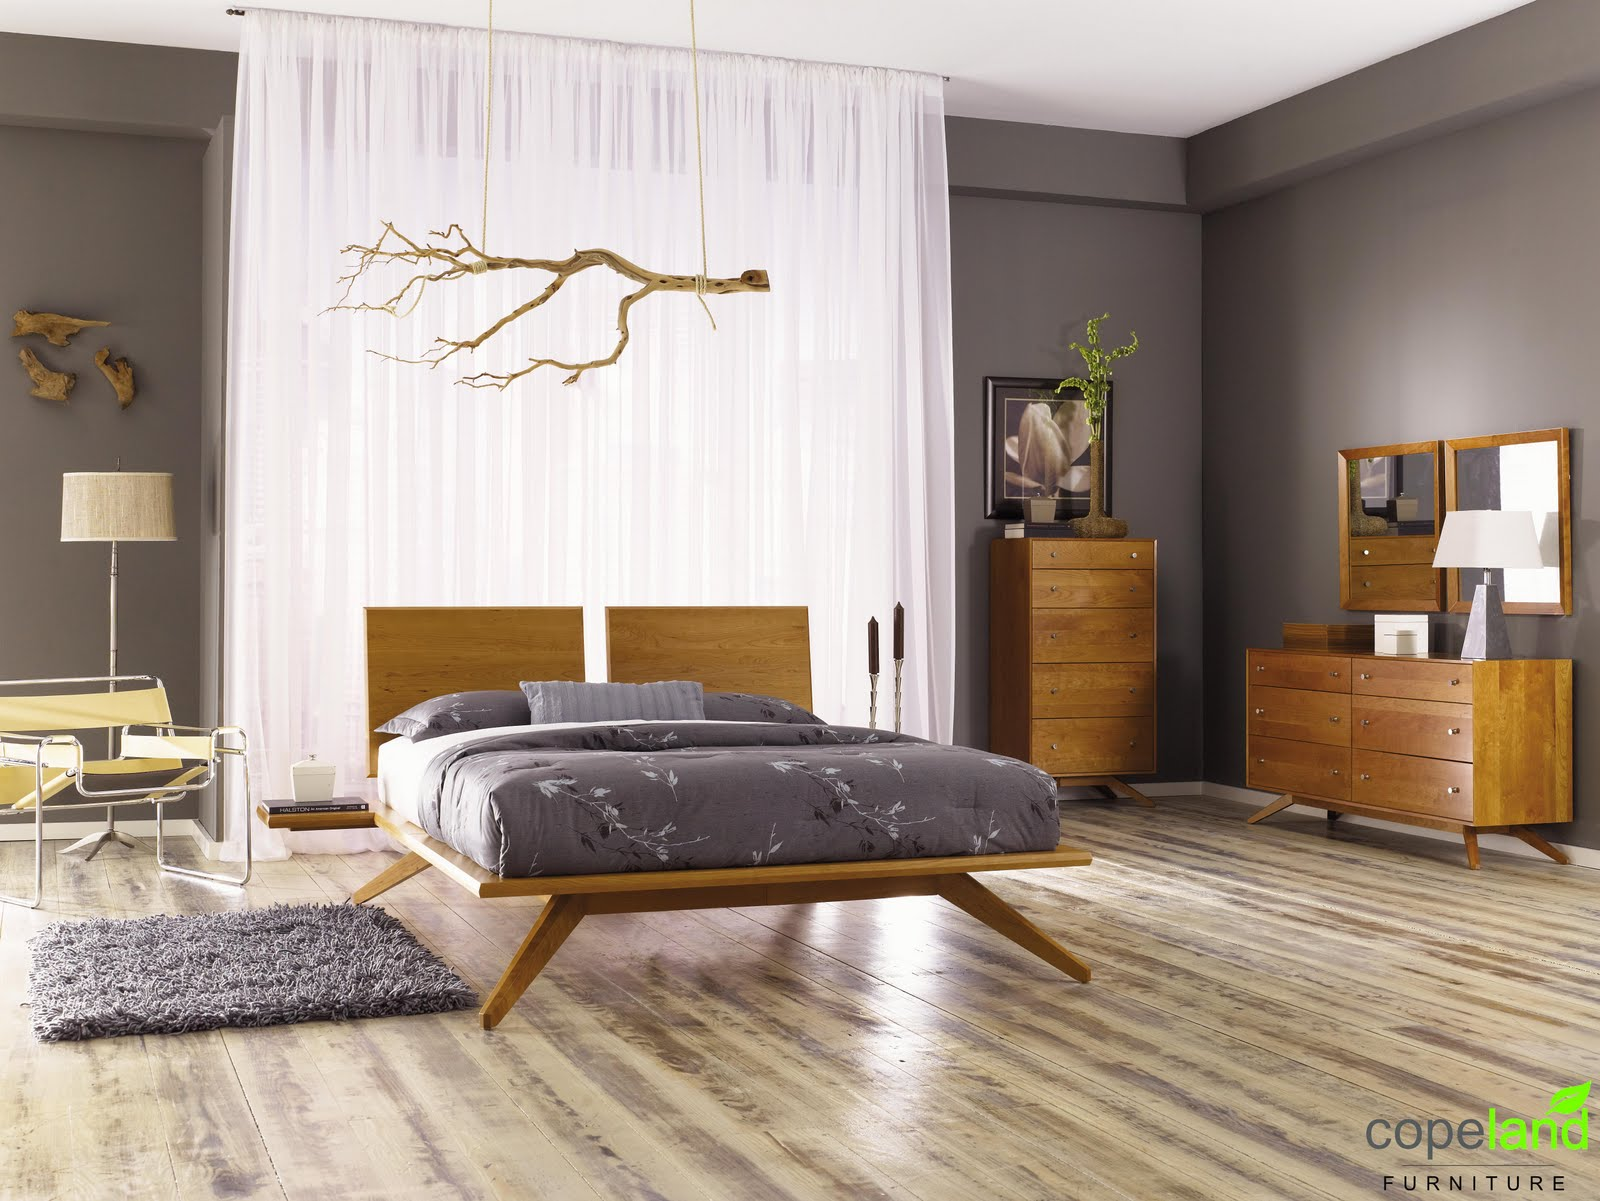 Danish furniture of colorado copeland furniture Danish bedroom furniture